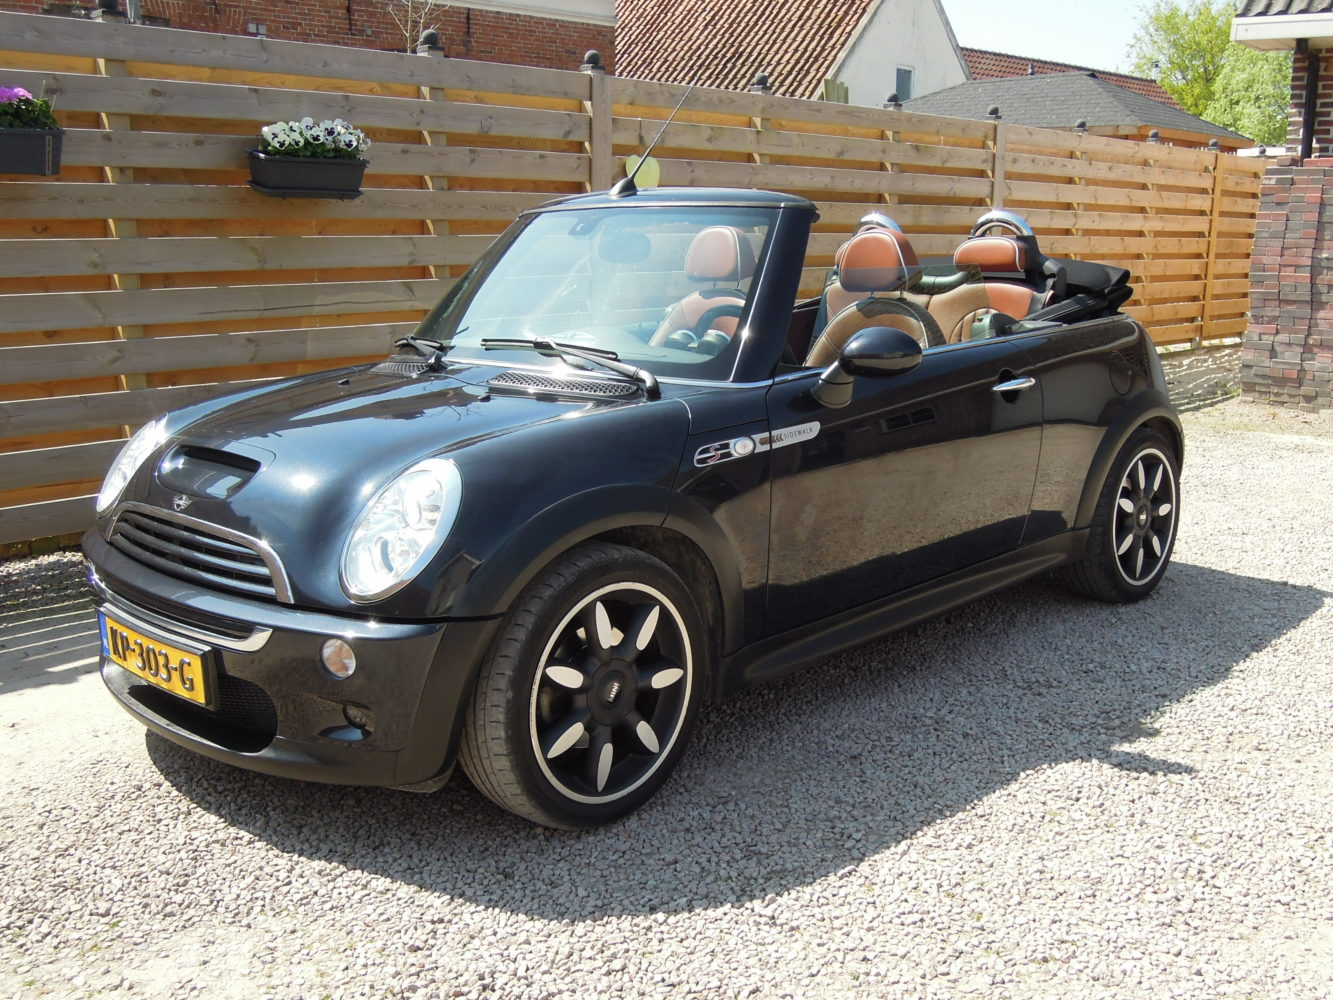 mini 1 6 16v cooper s sidewalk cabrio aut zwart leder 128 kw verkocht. Black Bedroom Furniture Sets. Home Design Ideas